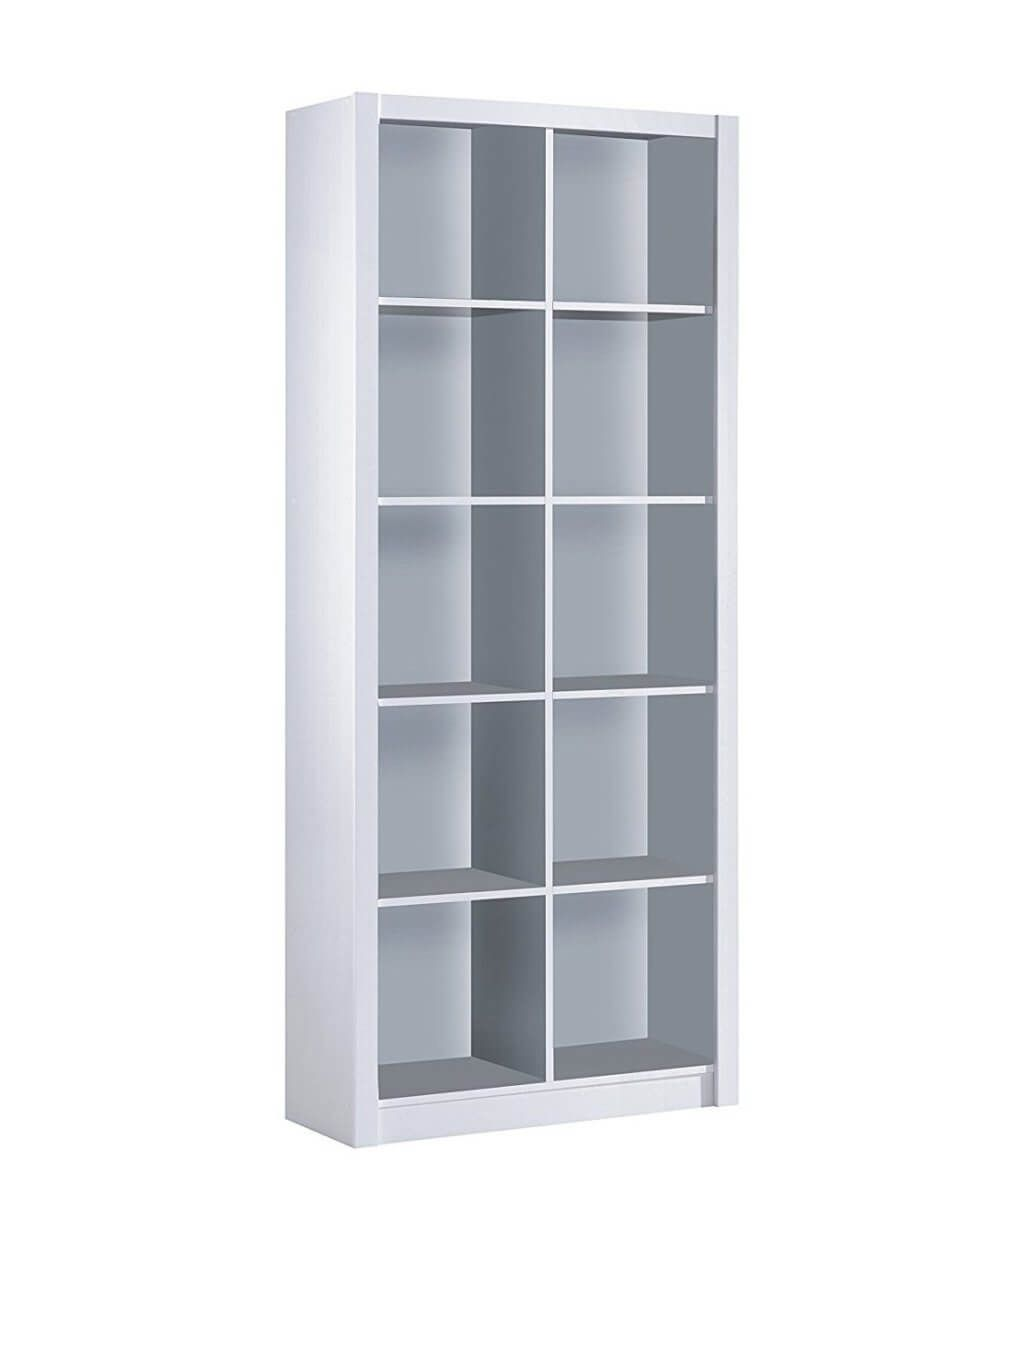 furniture white cube bookcase tall shelves kmart floating box argos over desk put without drilling pull out cabinet wall mounted coat hooks with shelf pretty brackets folding